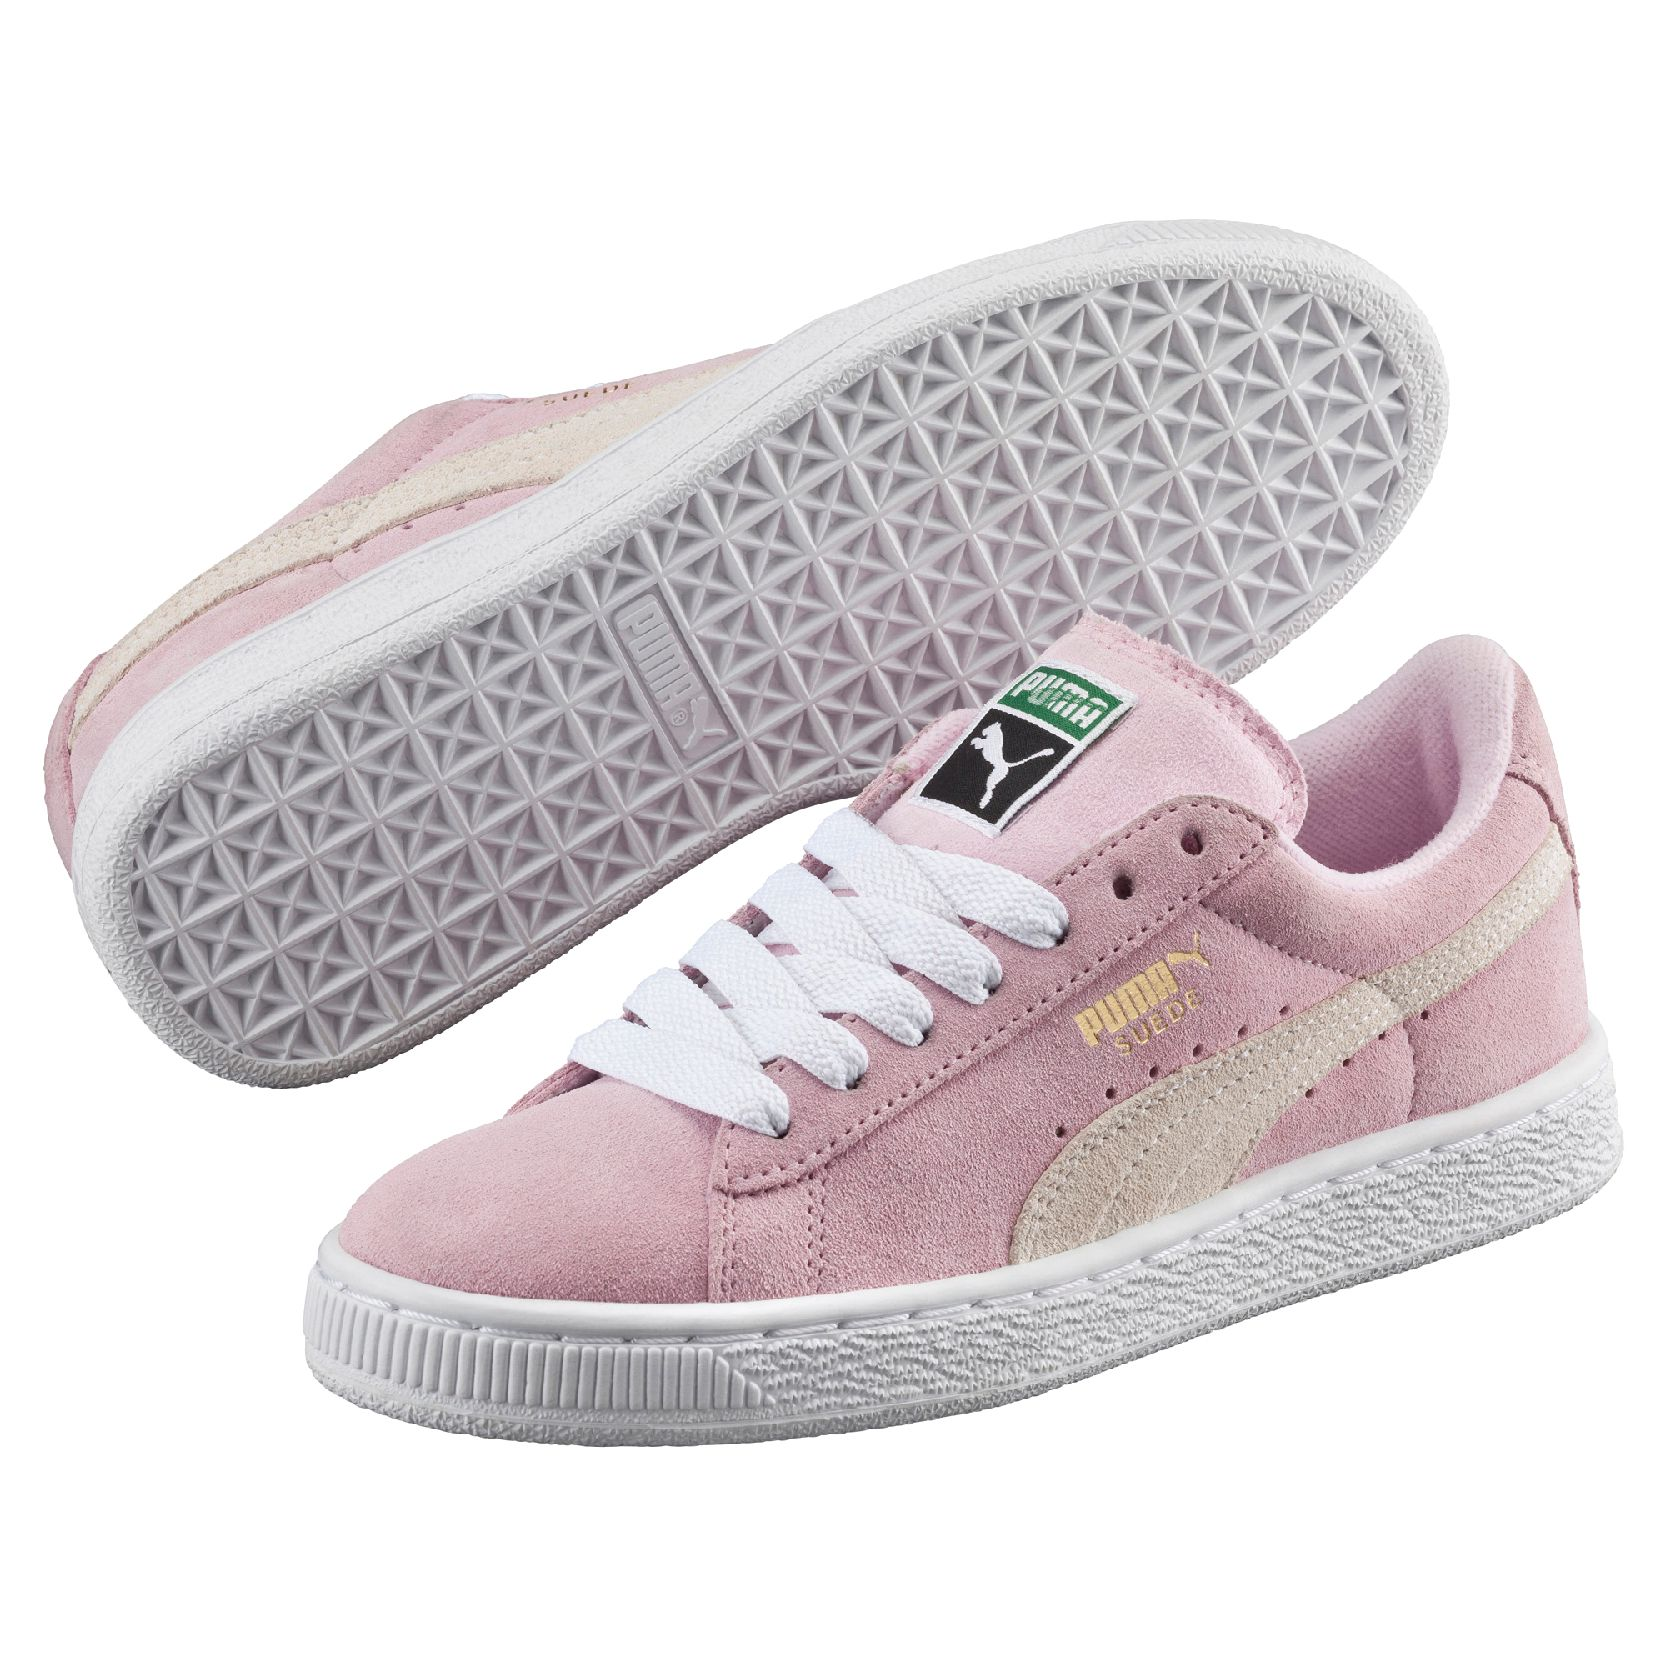 Chaussures Coverguard Homme chaussures sneakers Vans Old Skool D3HW00 Chaussures Puma roses Casual femme Hchgd